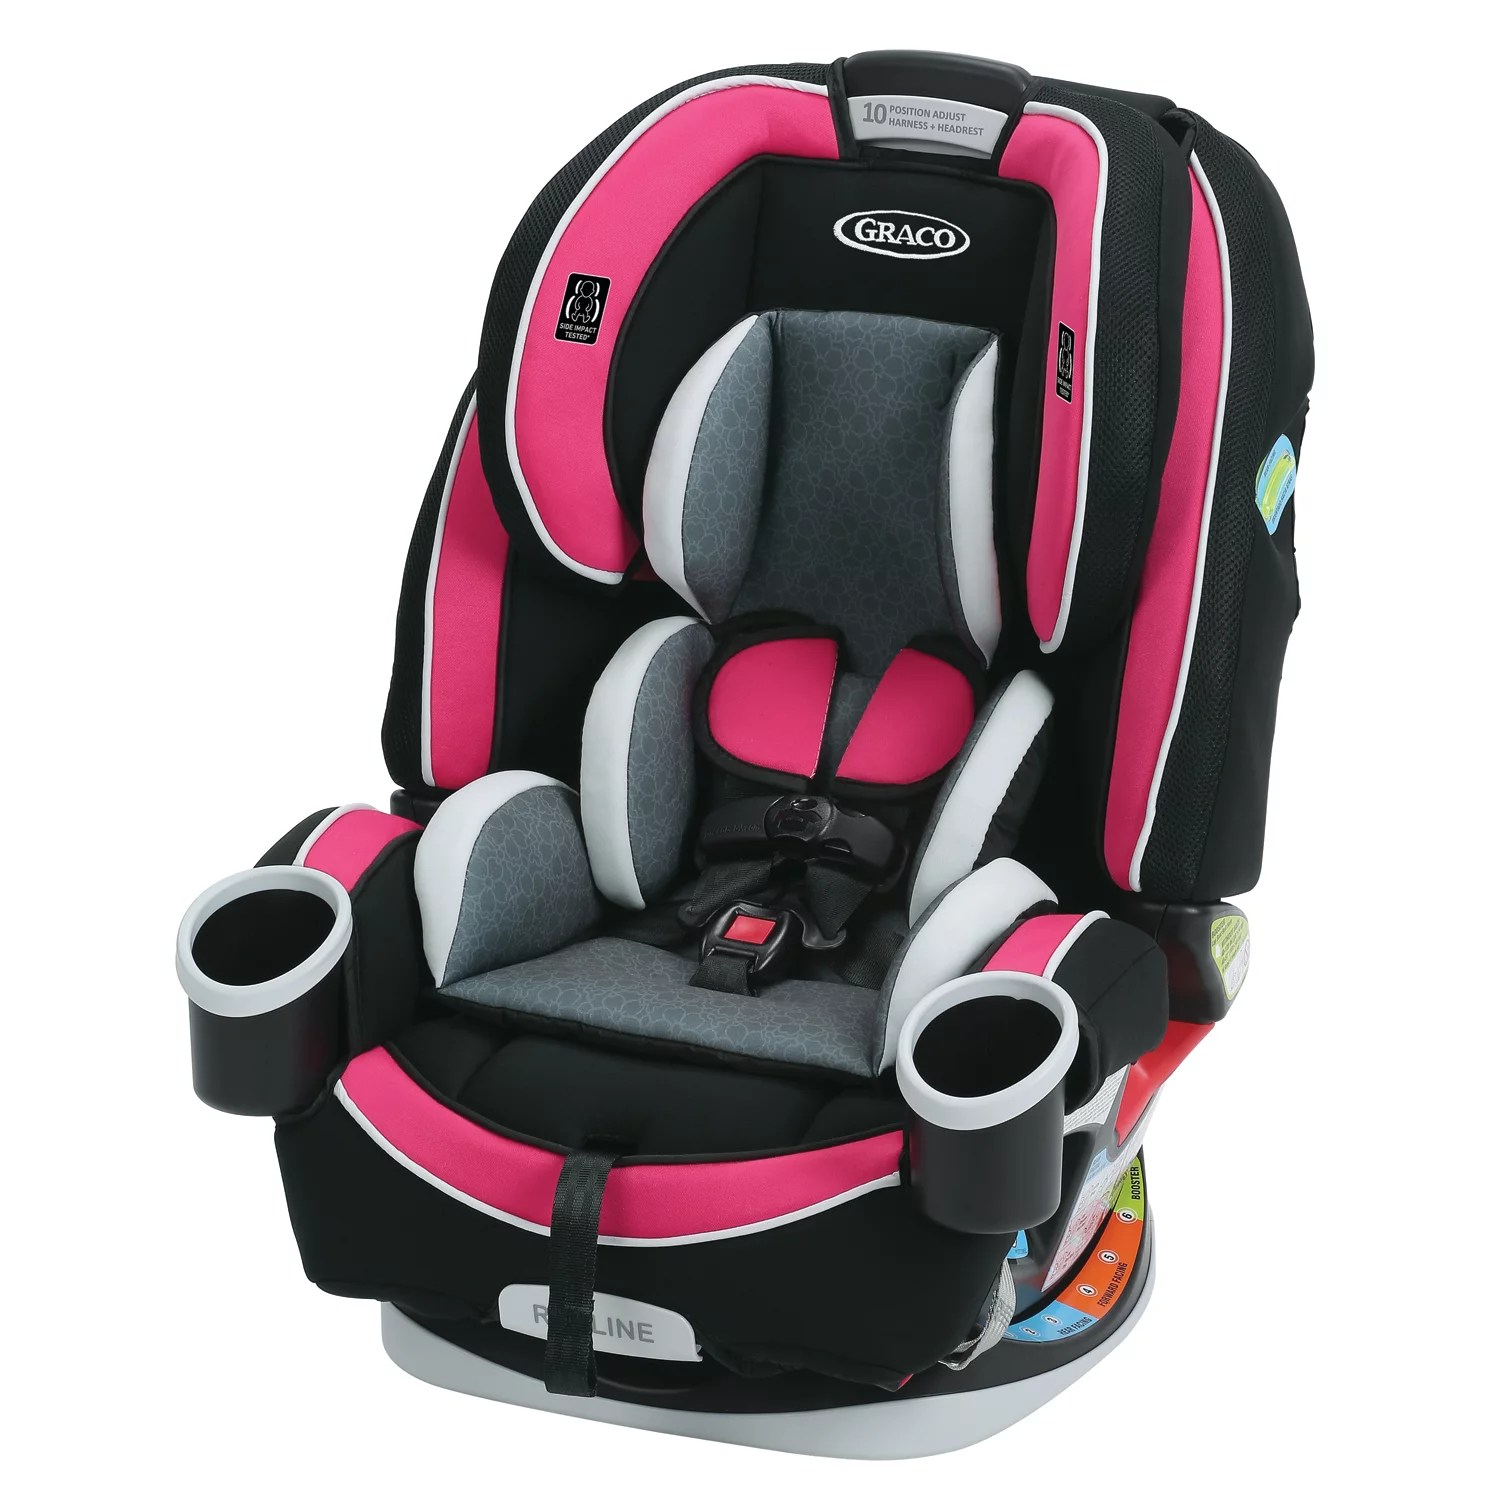 baby chairs for toddlers samsonite folding car seats child kohl s infant